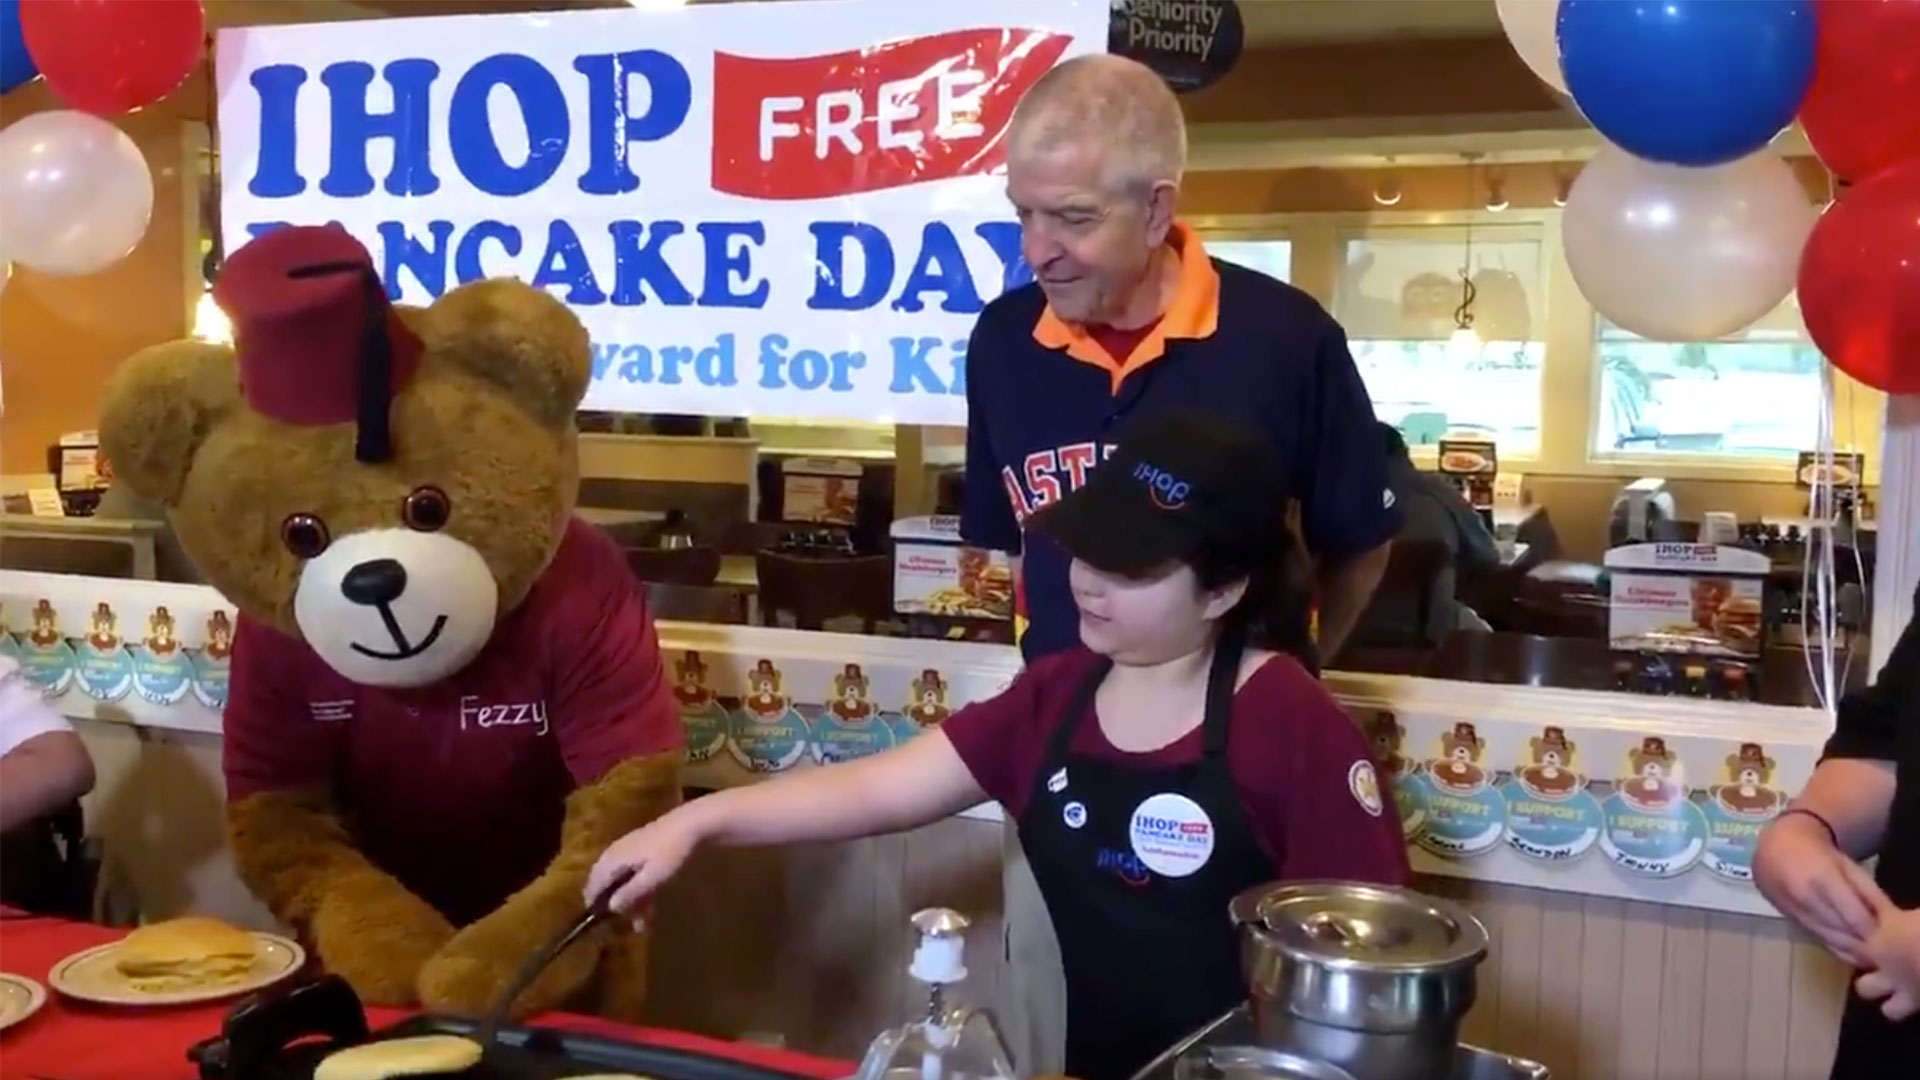 Mattress Mack IHOP